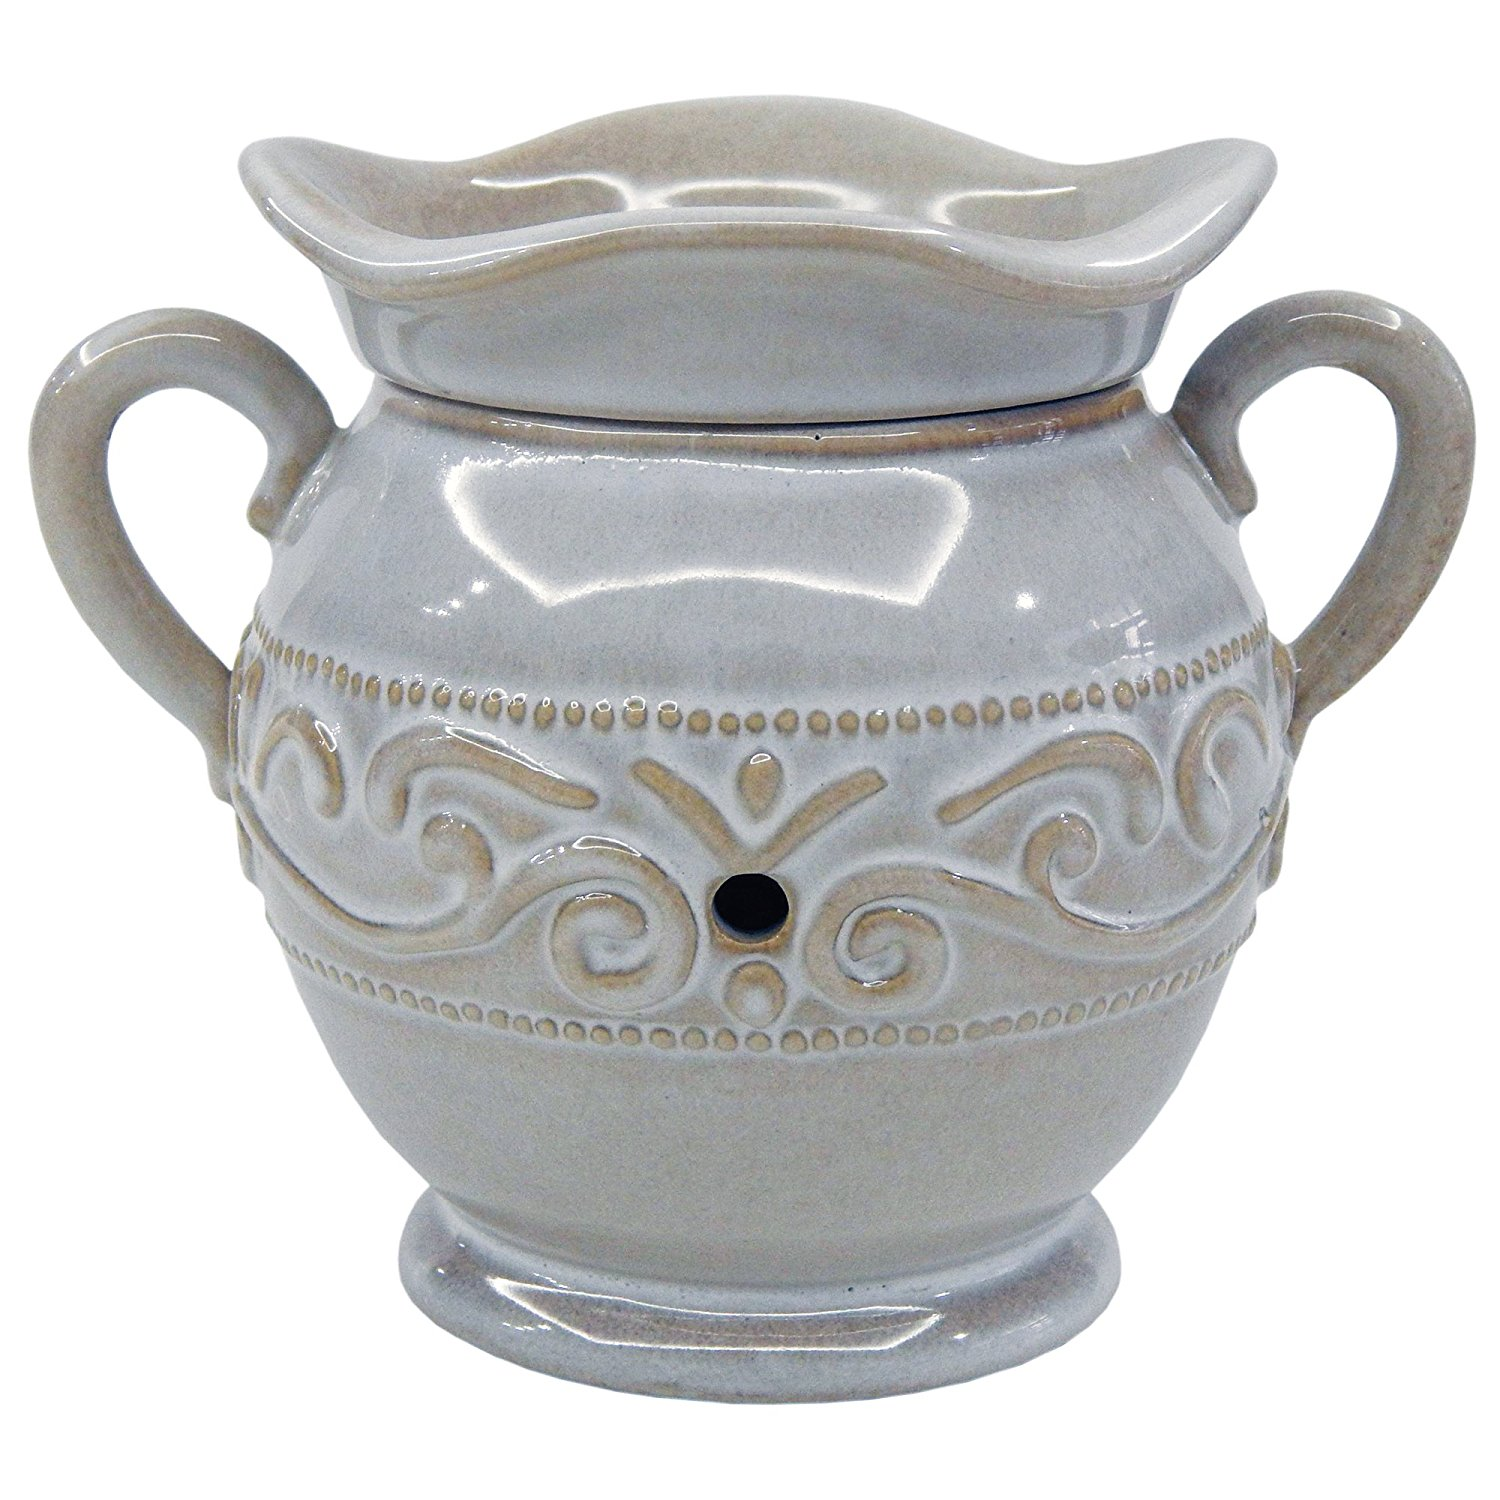 Image of A Cheerful Giver Cream Vase Wax and Oil Warmer